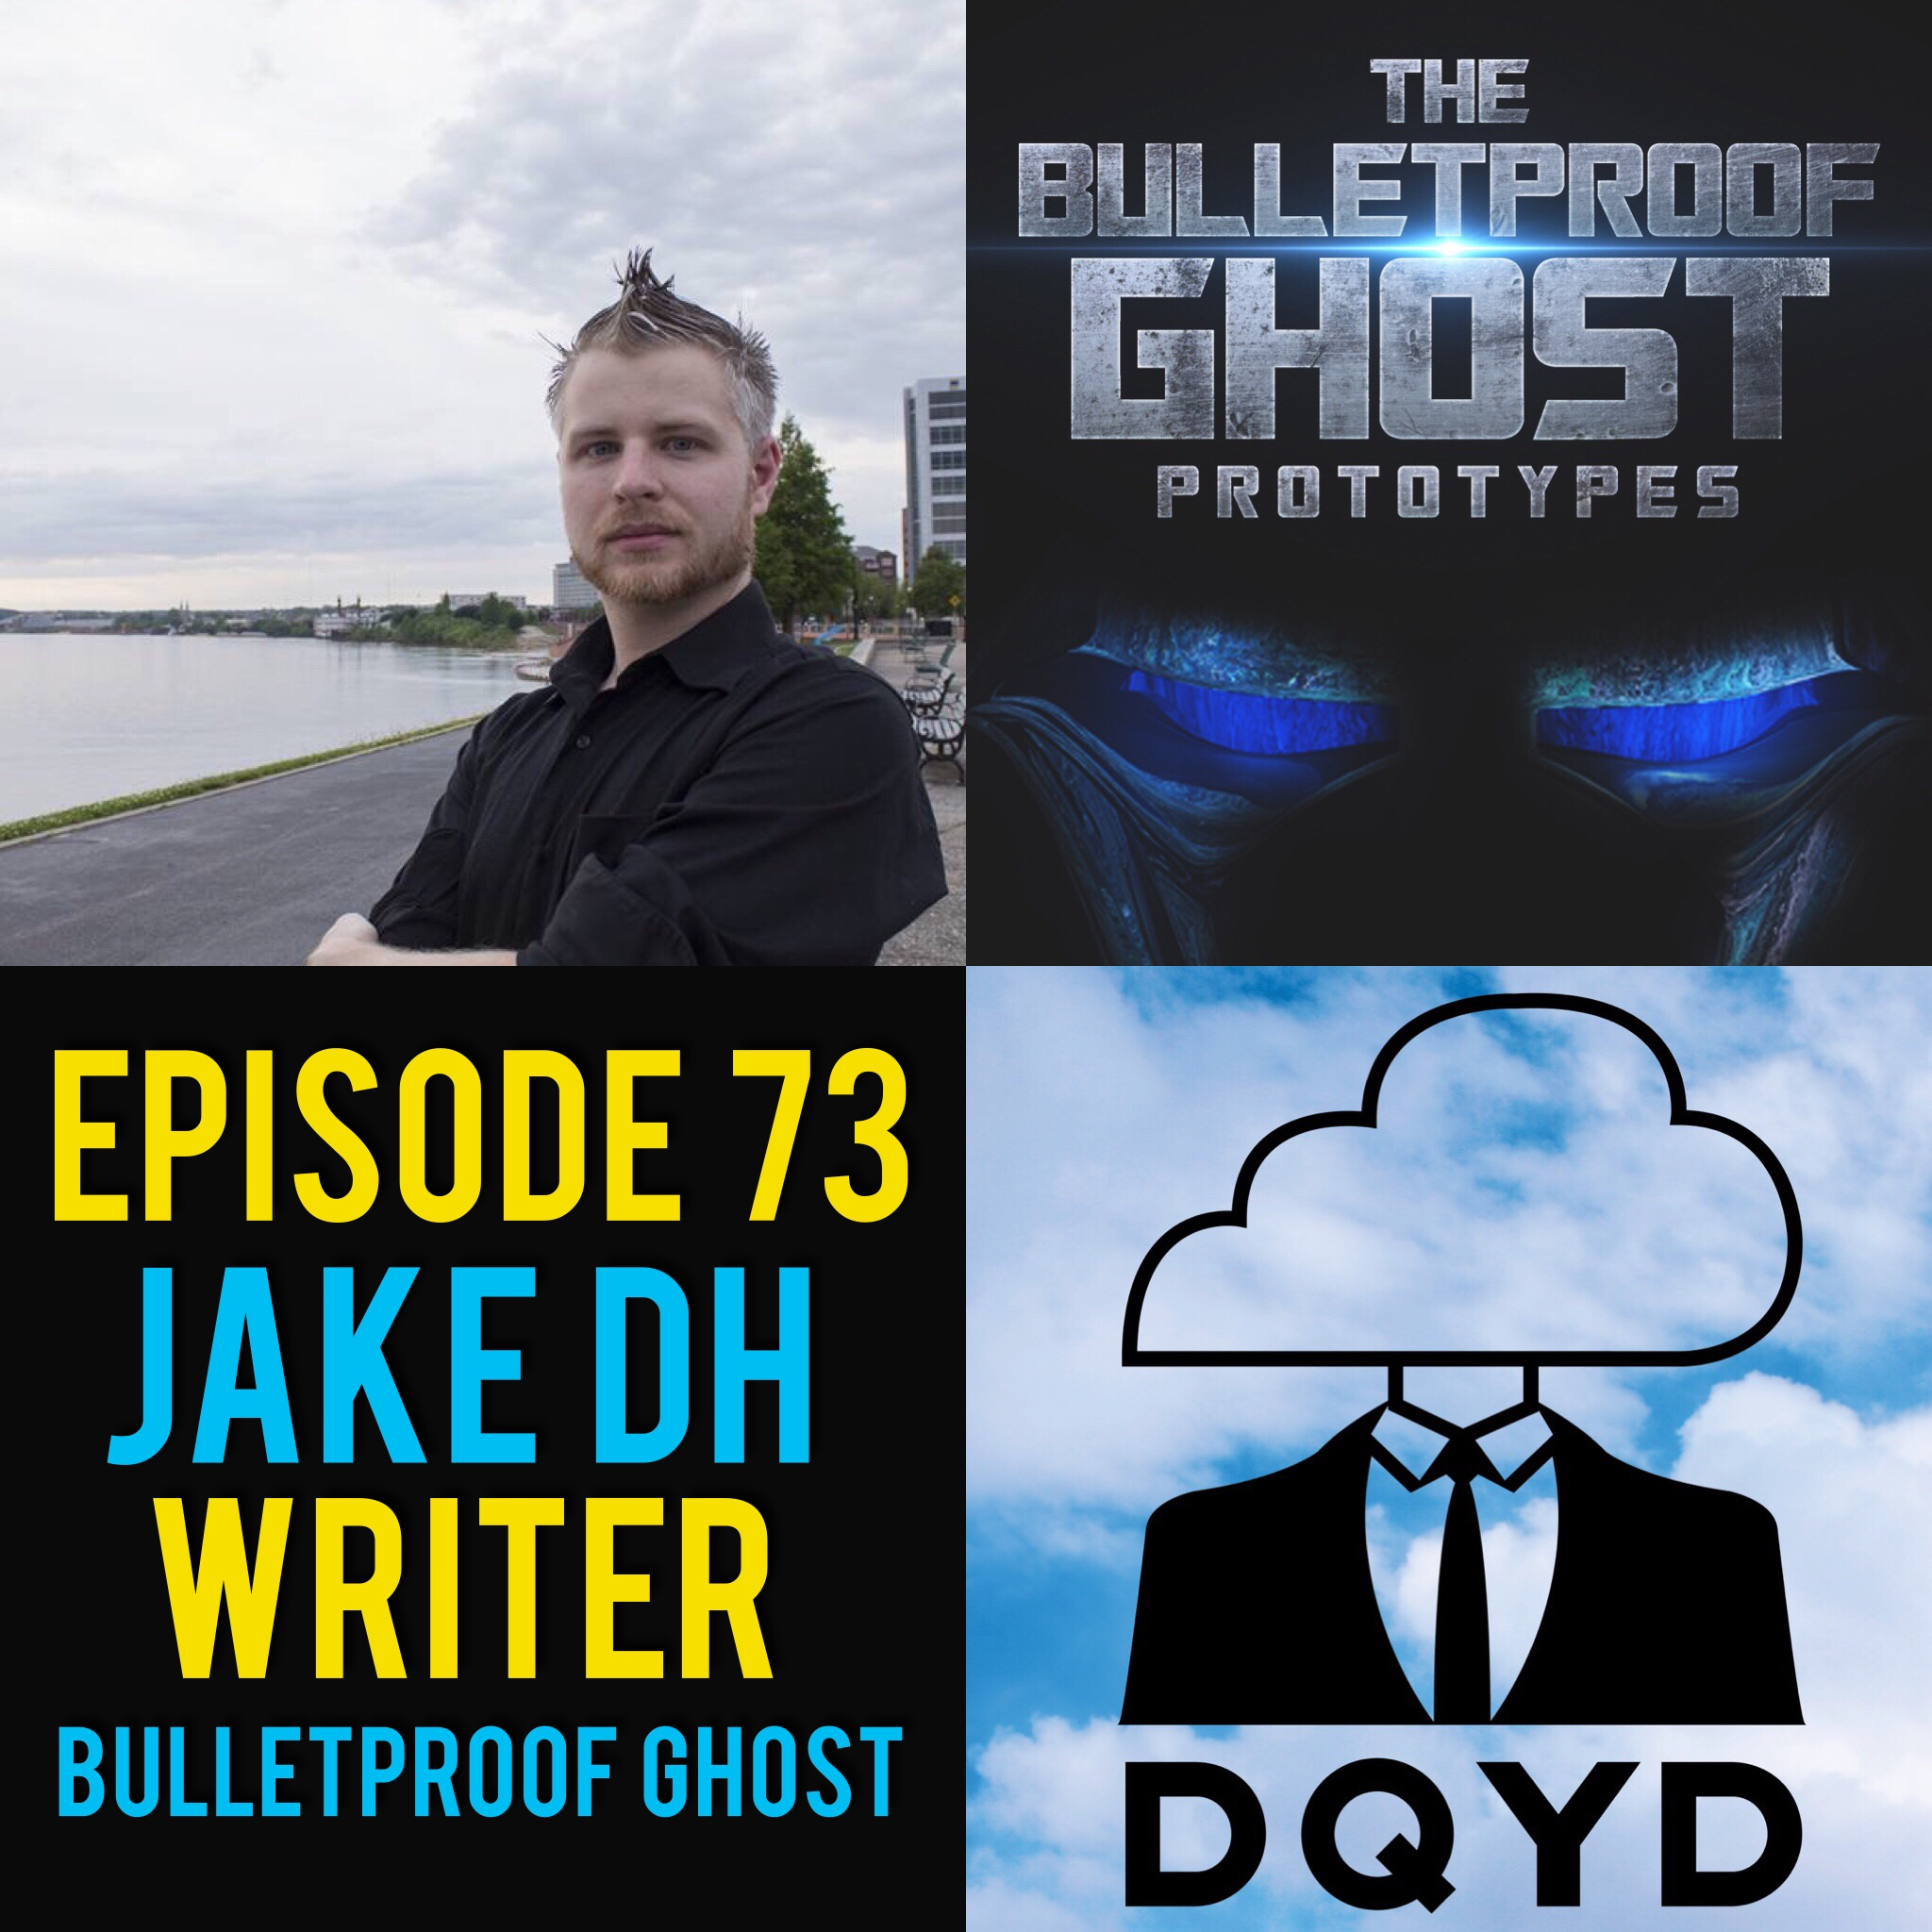 "Episode 73 with Author: Jake DH! Since he was in middle school Jake Harris has been crafting his soon to be released super hero novel ""The Bulletproof Ghost"". Jake shares with us the long hours and countless trials that have been poured into the series since it's conception. Check out Jake and his book series by going to:  https://www.amazon.com/BulletProof-Ghost-Prototypes-Jake-dh-ebook/dp/B00MK30EC4/ref=sr_1_2?ie=UTF8&qid=1502762206&sr=8-2&keywords=bulletproof+ghost   Song of the week is '' No More"" by the talented Osiella. Check out this along with their other great tunes by visiting http://www.osiella.com/"